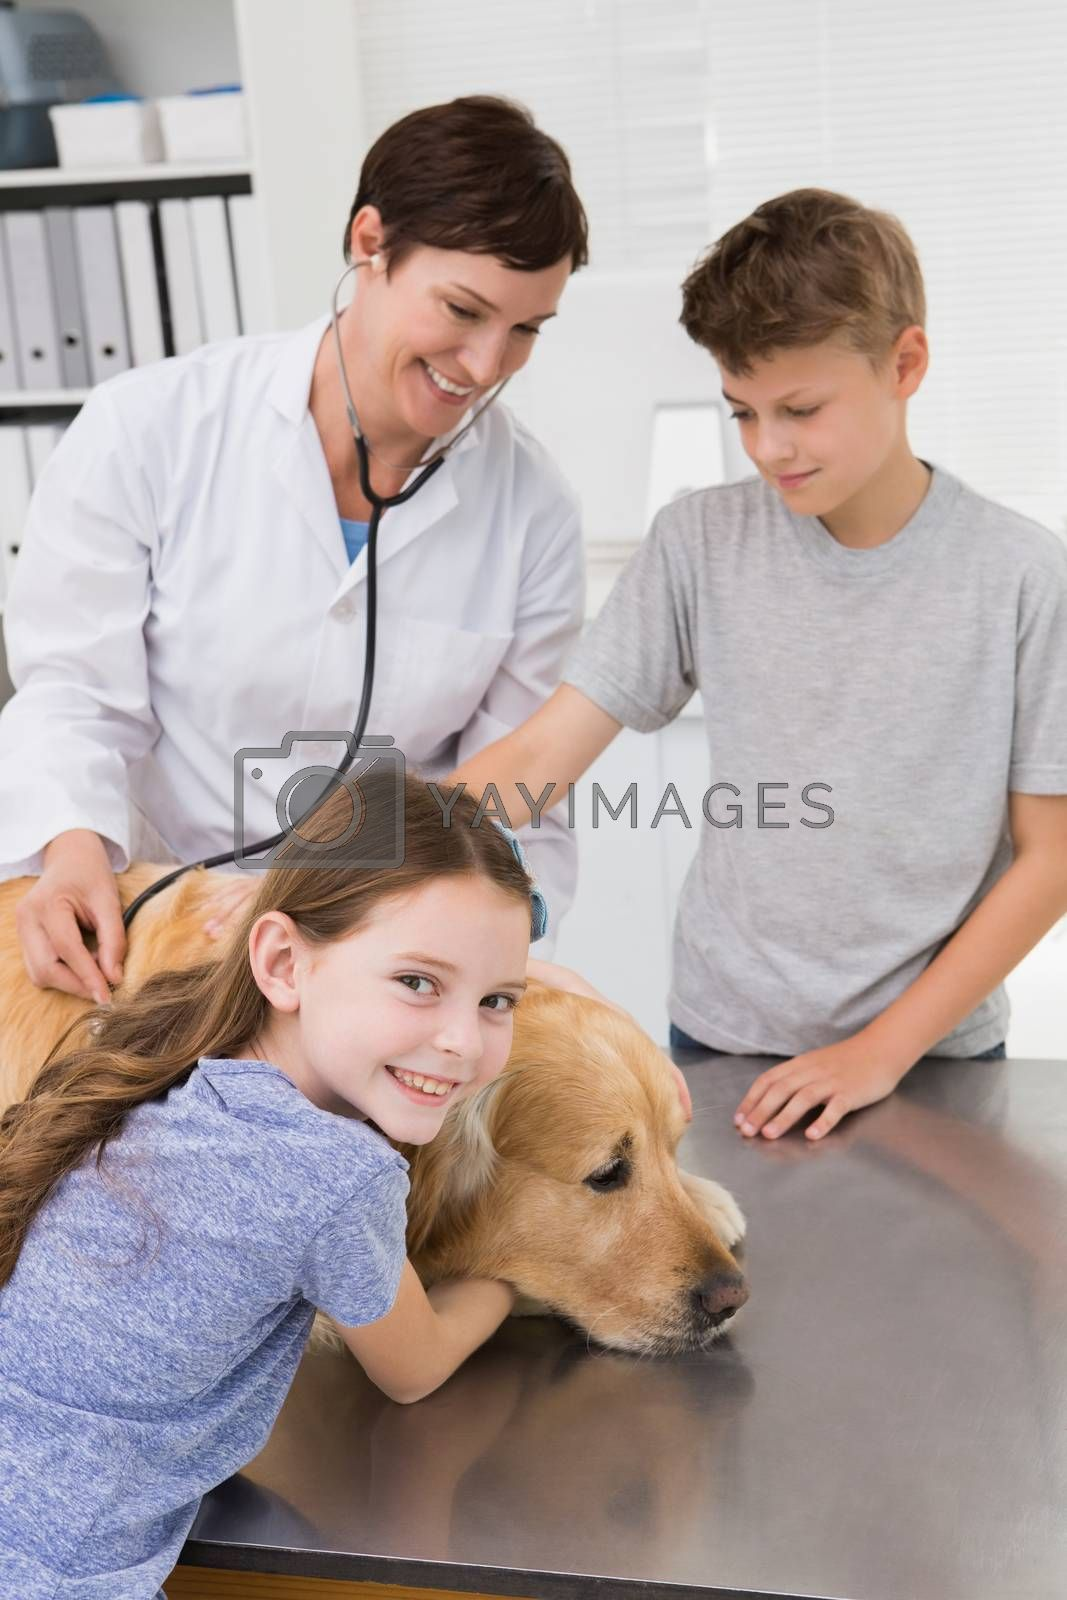 Smiling vet examining a dog with its owners by Wavebreakmedia